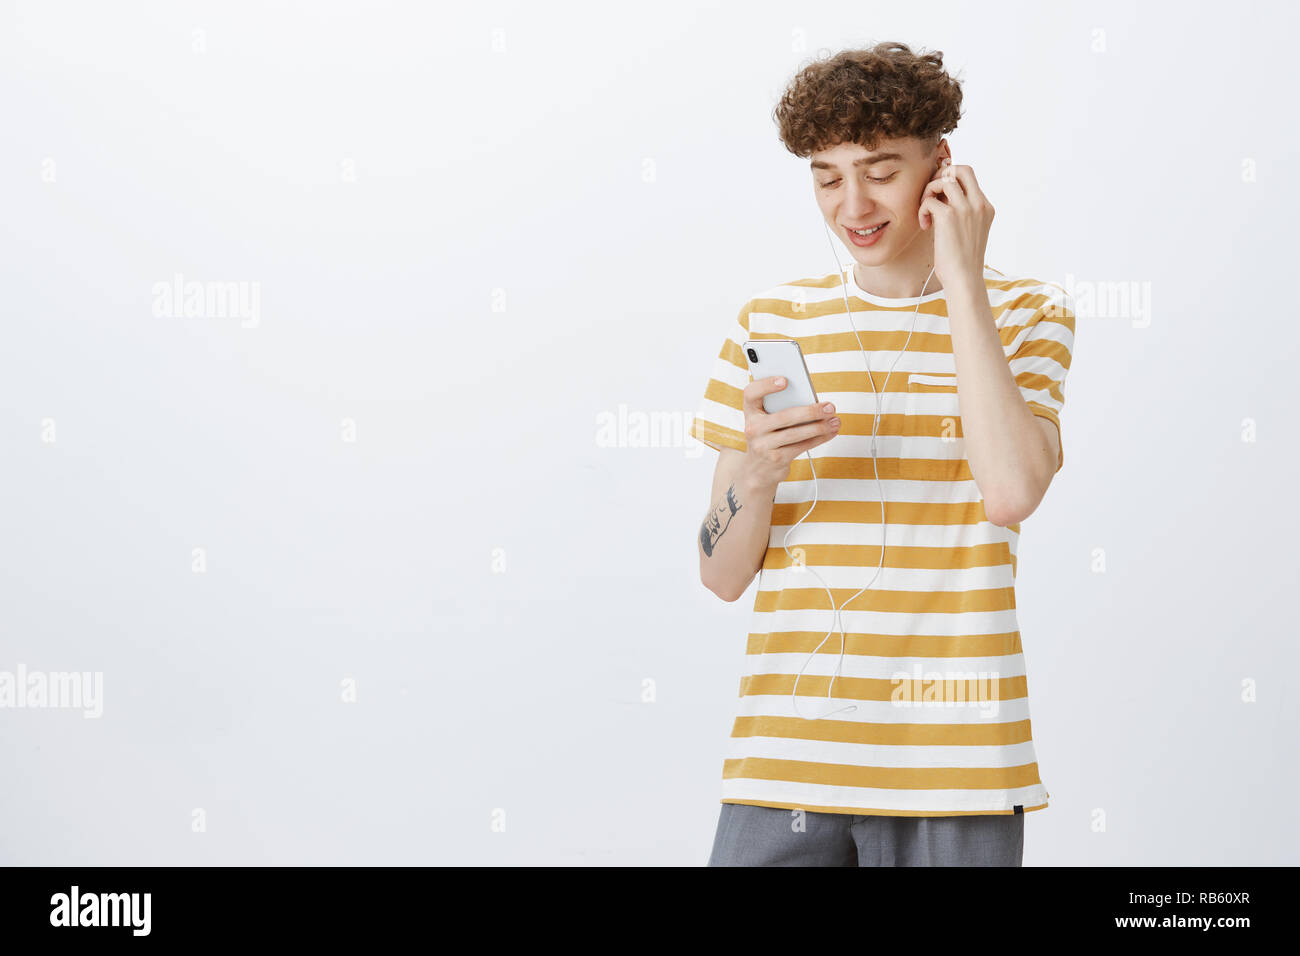 Delighted and carefree modern young man with trendy curly